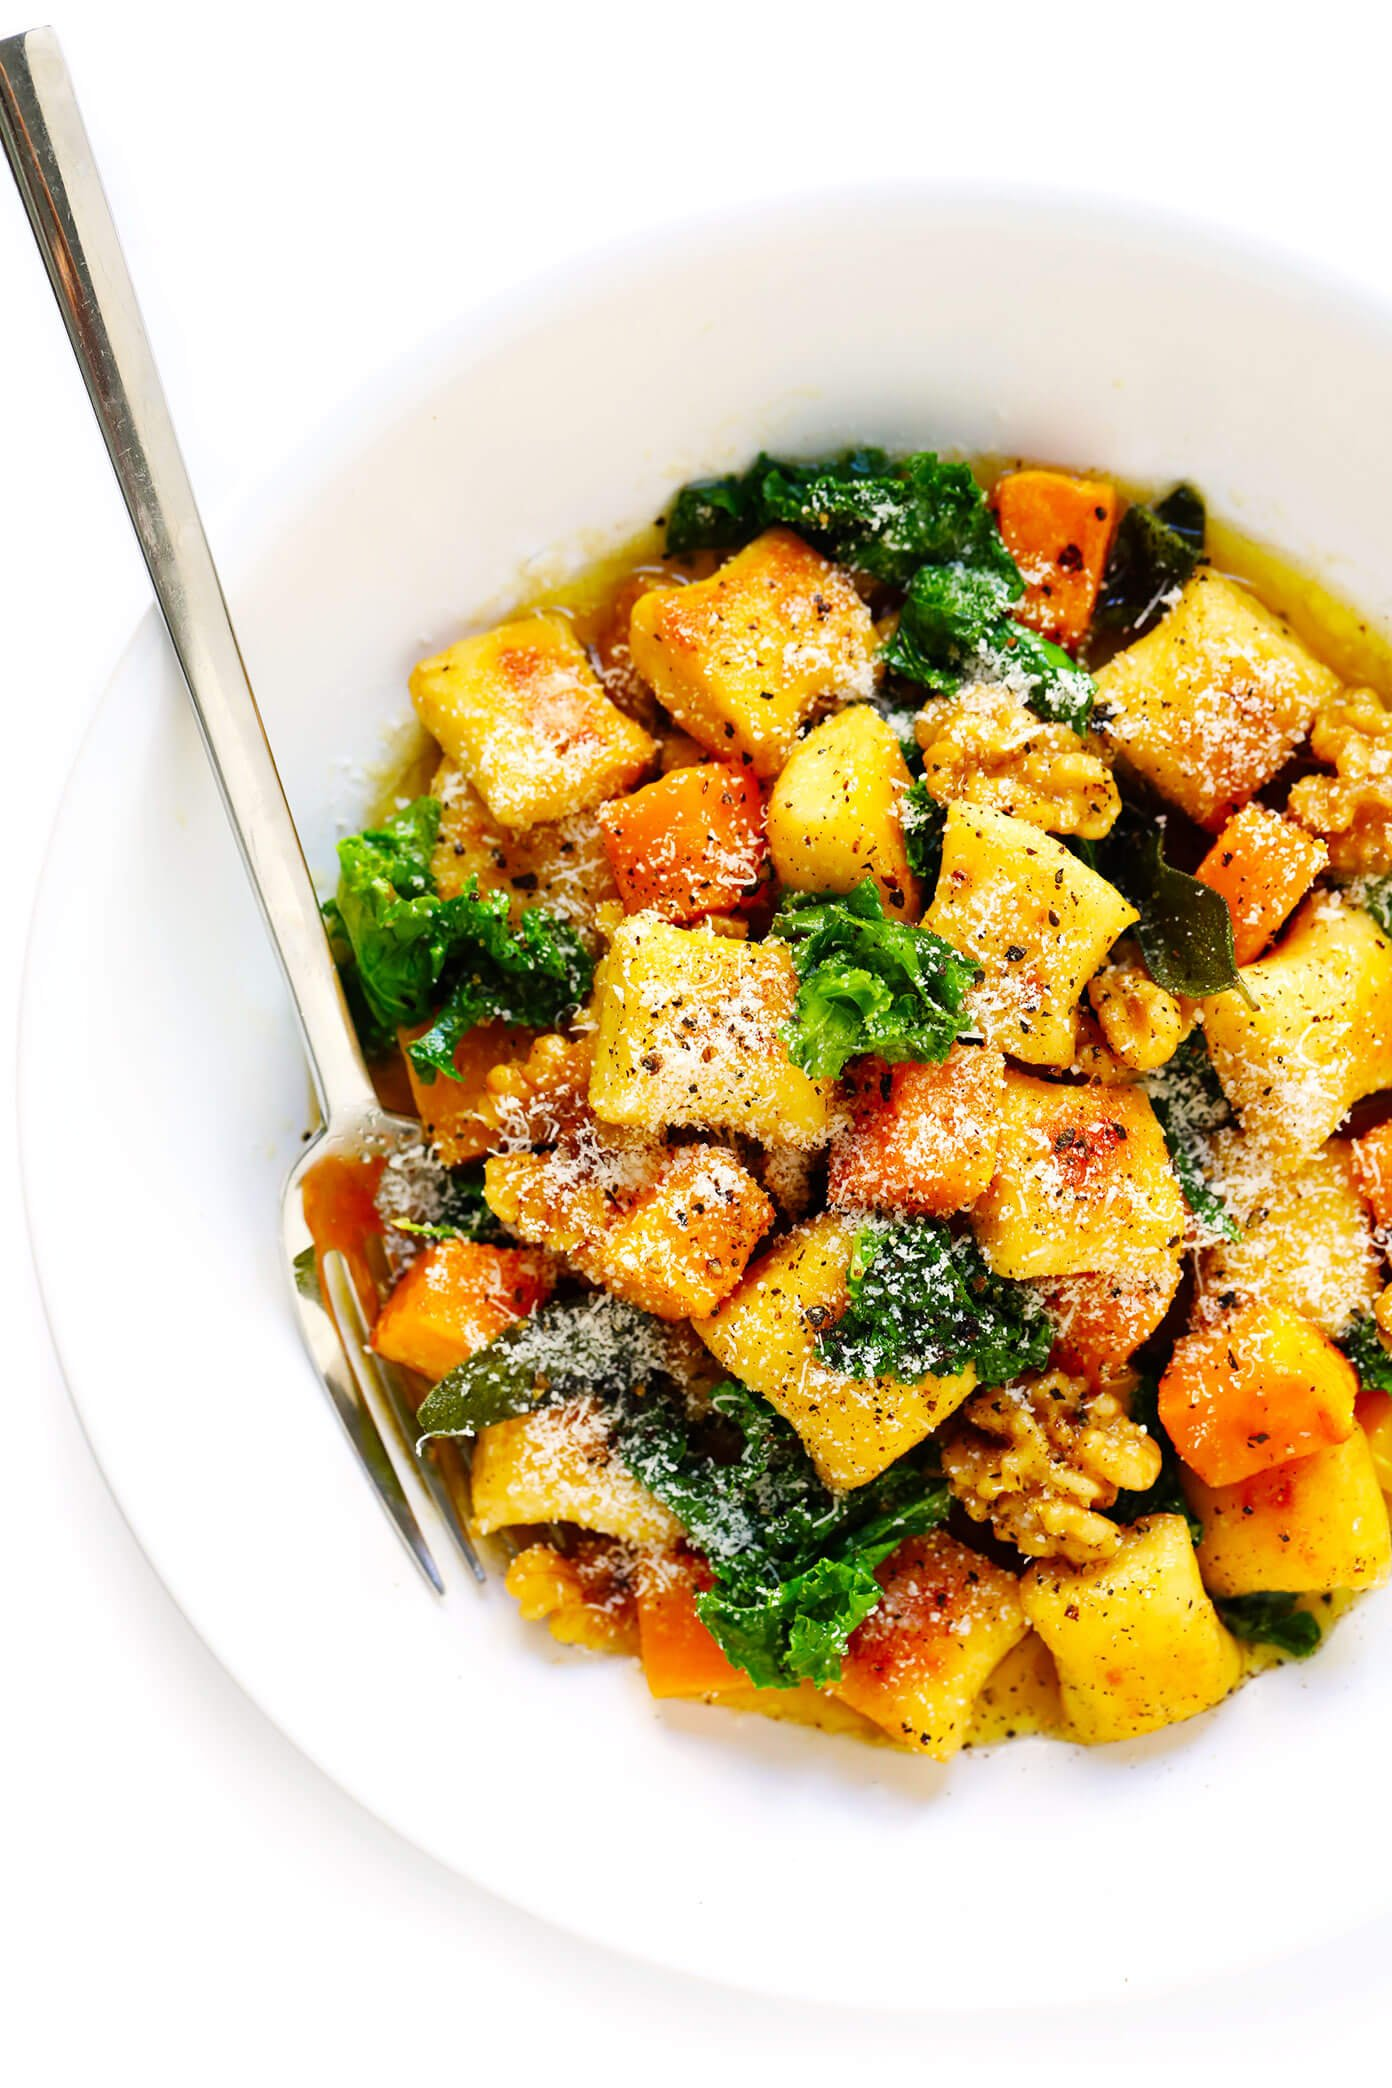 Gnocchi with Roasted Butternut Squash, Kale and Sage Brown Butter Sauce